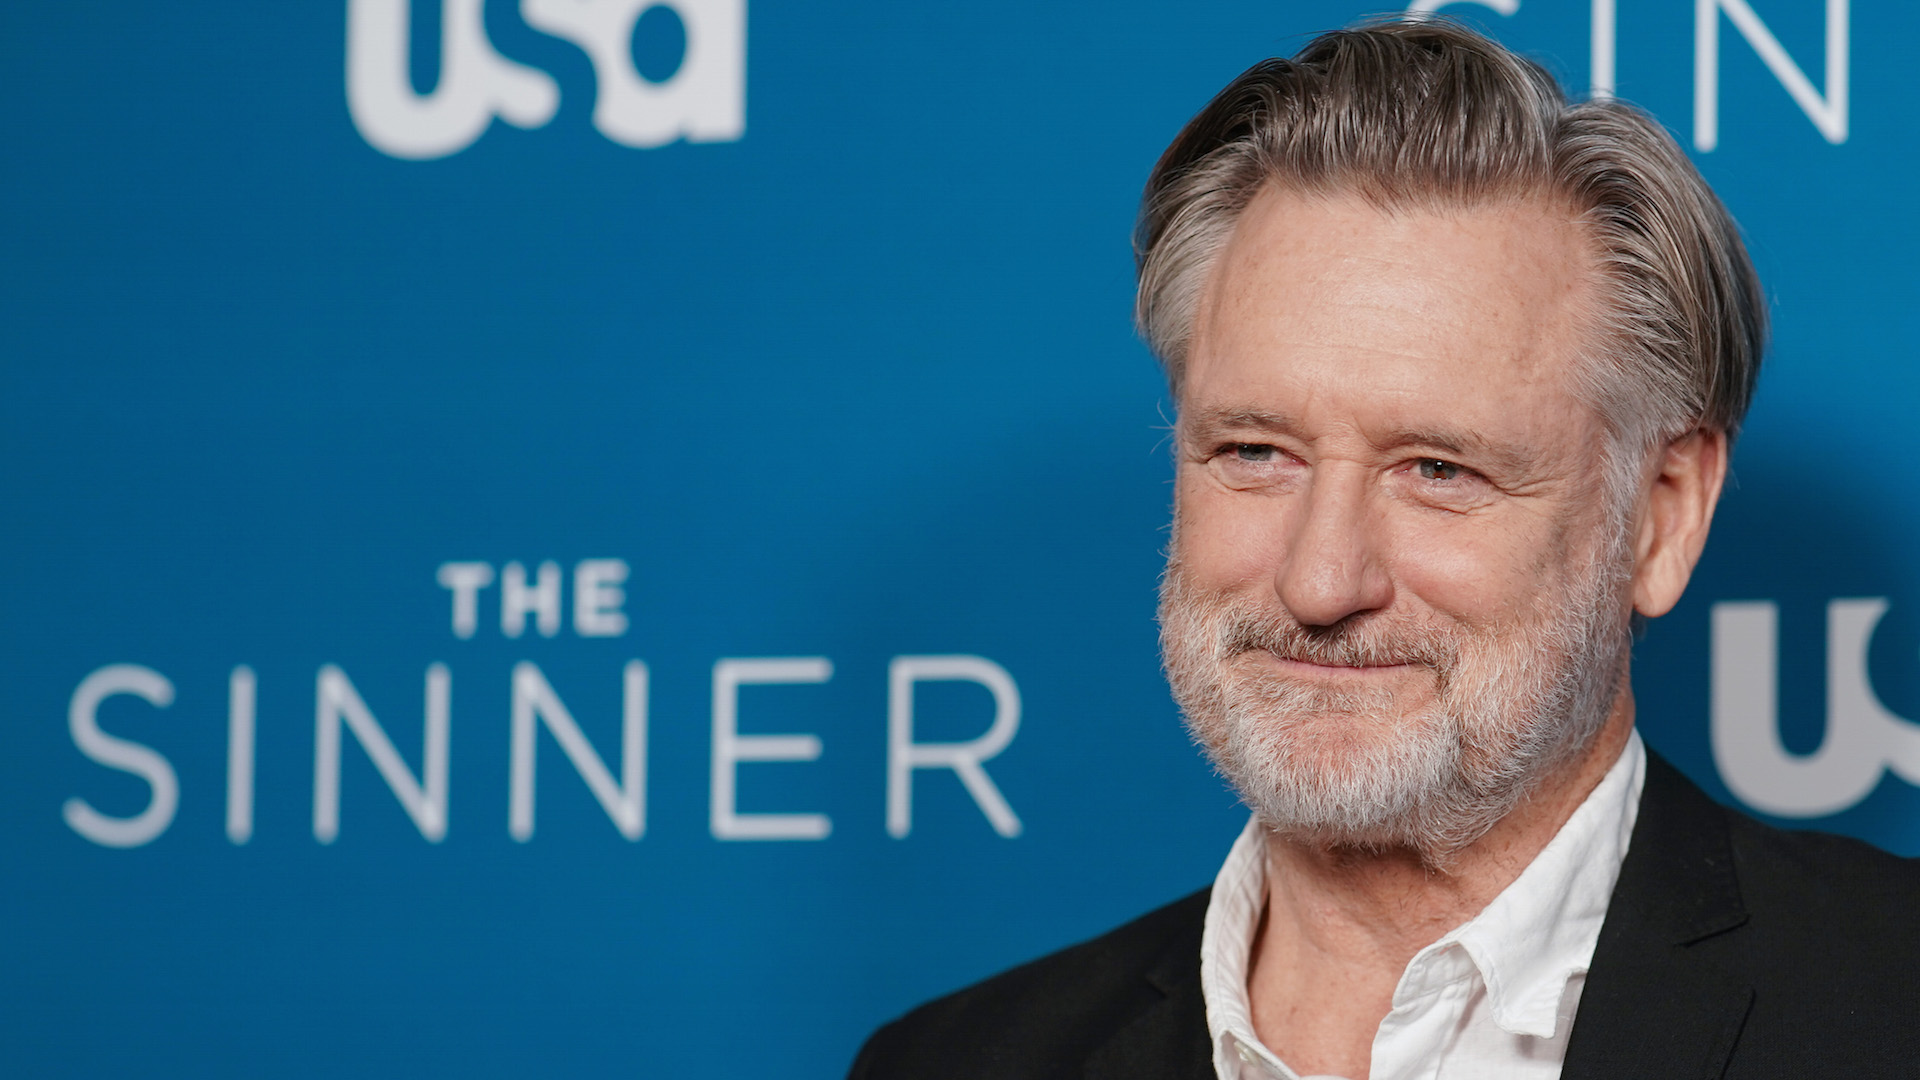 Bill Pullman Responds to Trump's 'Independence Day' Tweet: 'My Voice Belongs to No One But Me'